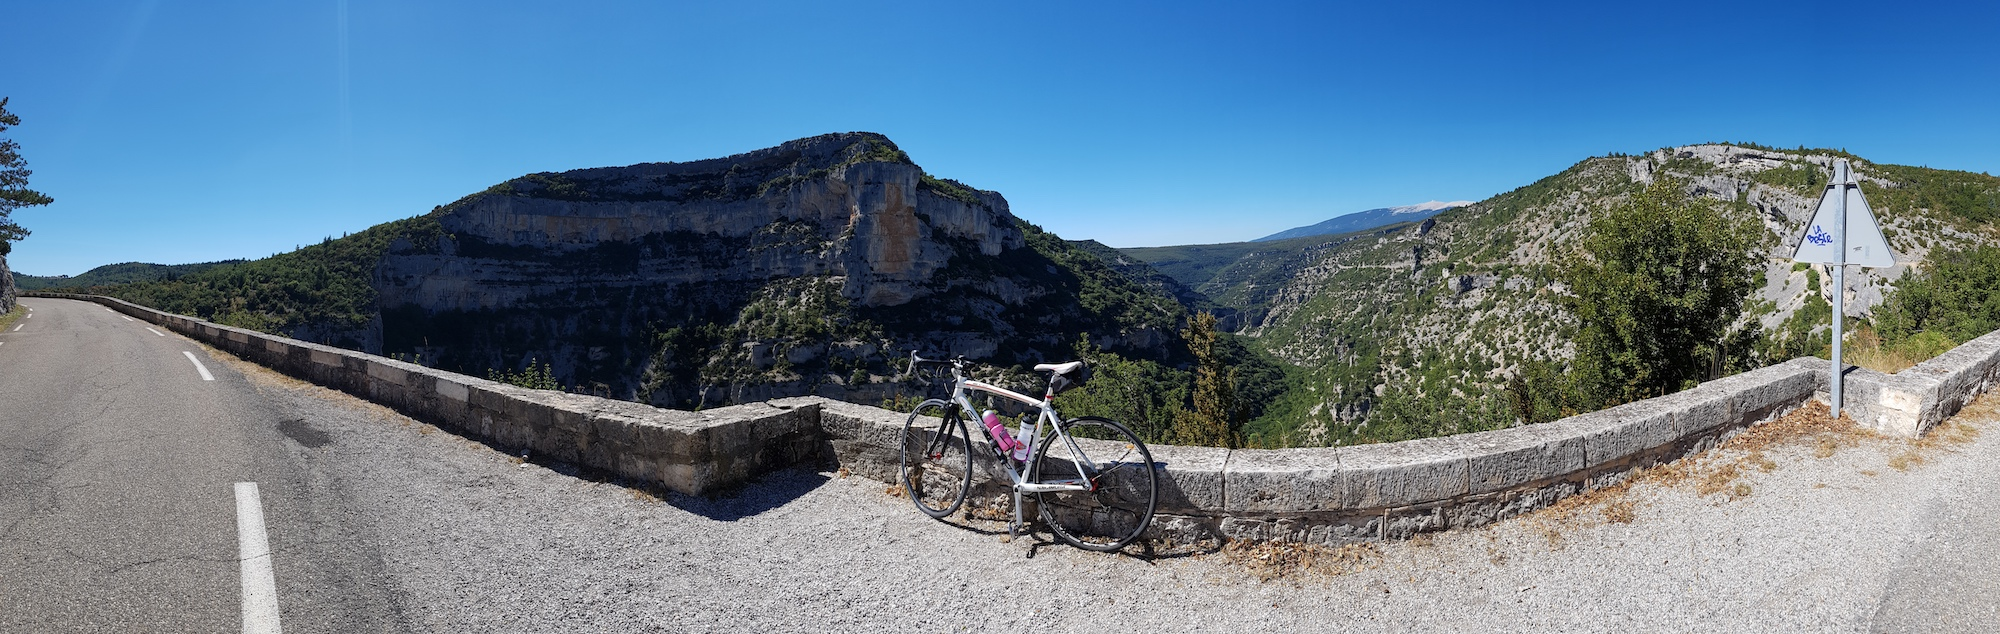 Cycling Gorges de la Nesque - Adventuring around the Mont Ventoux